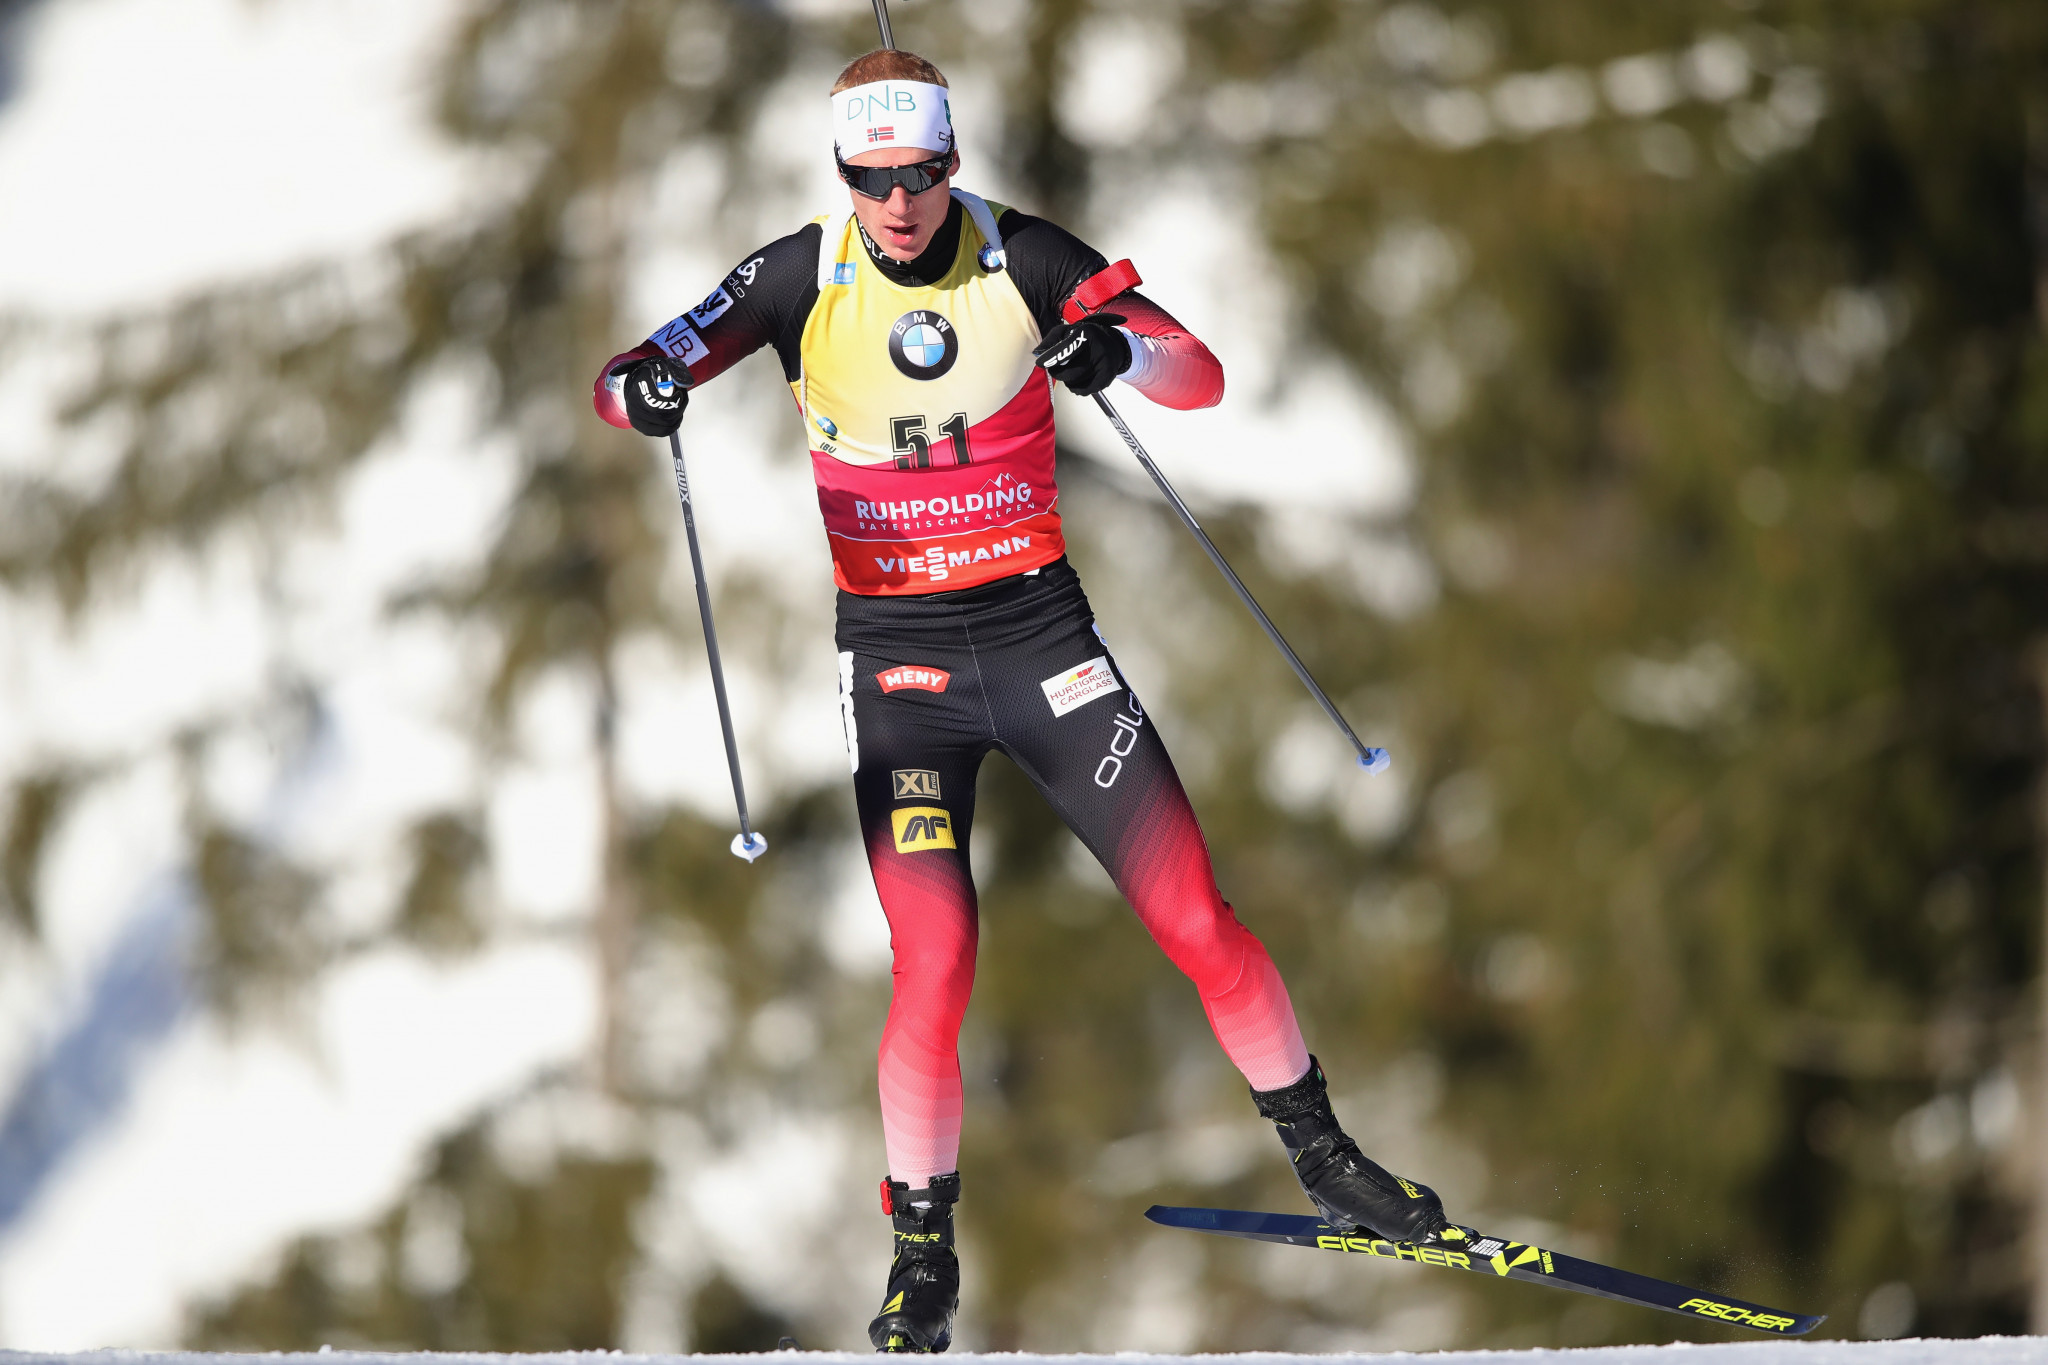 Johannes Thingnes Bø overcomes older brother to secure eighth victory of IBU World Cup season